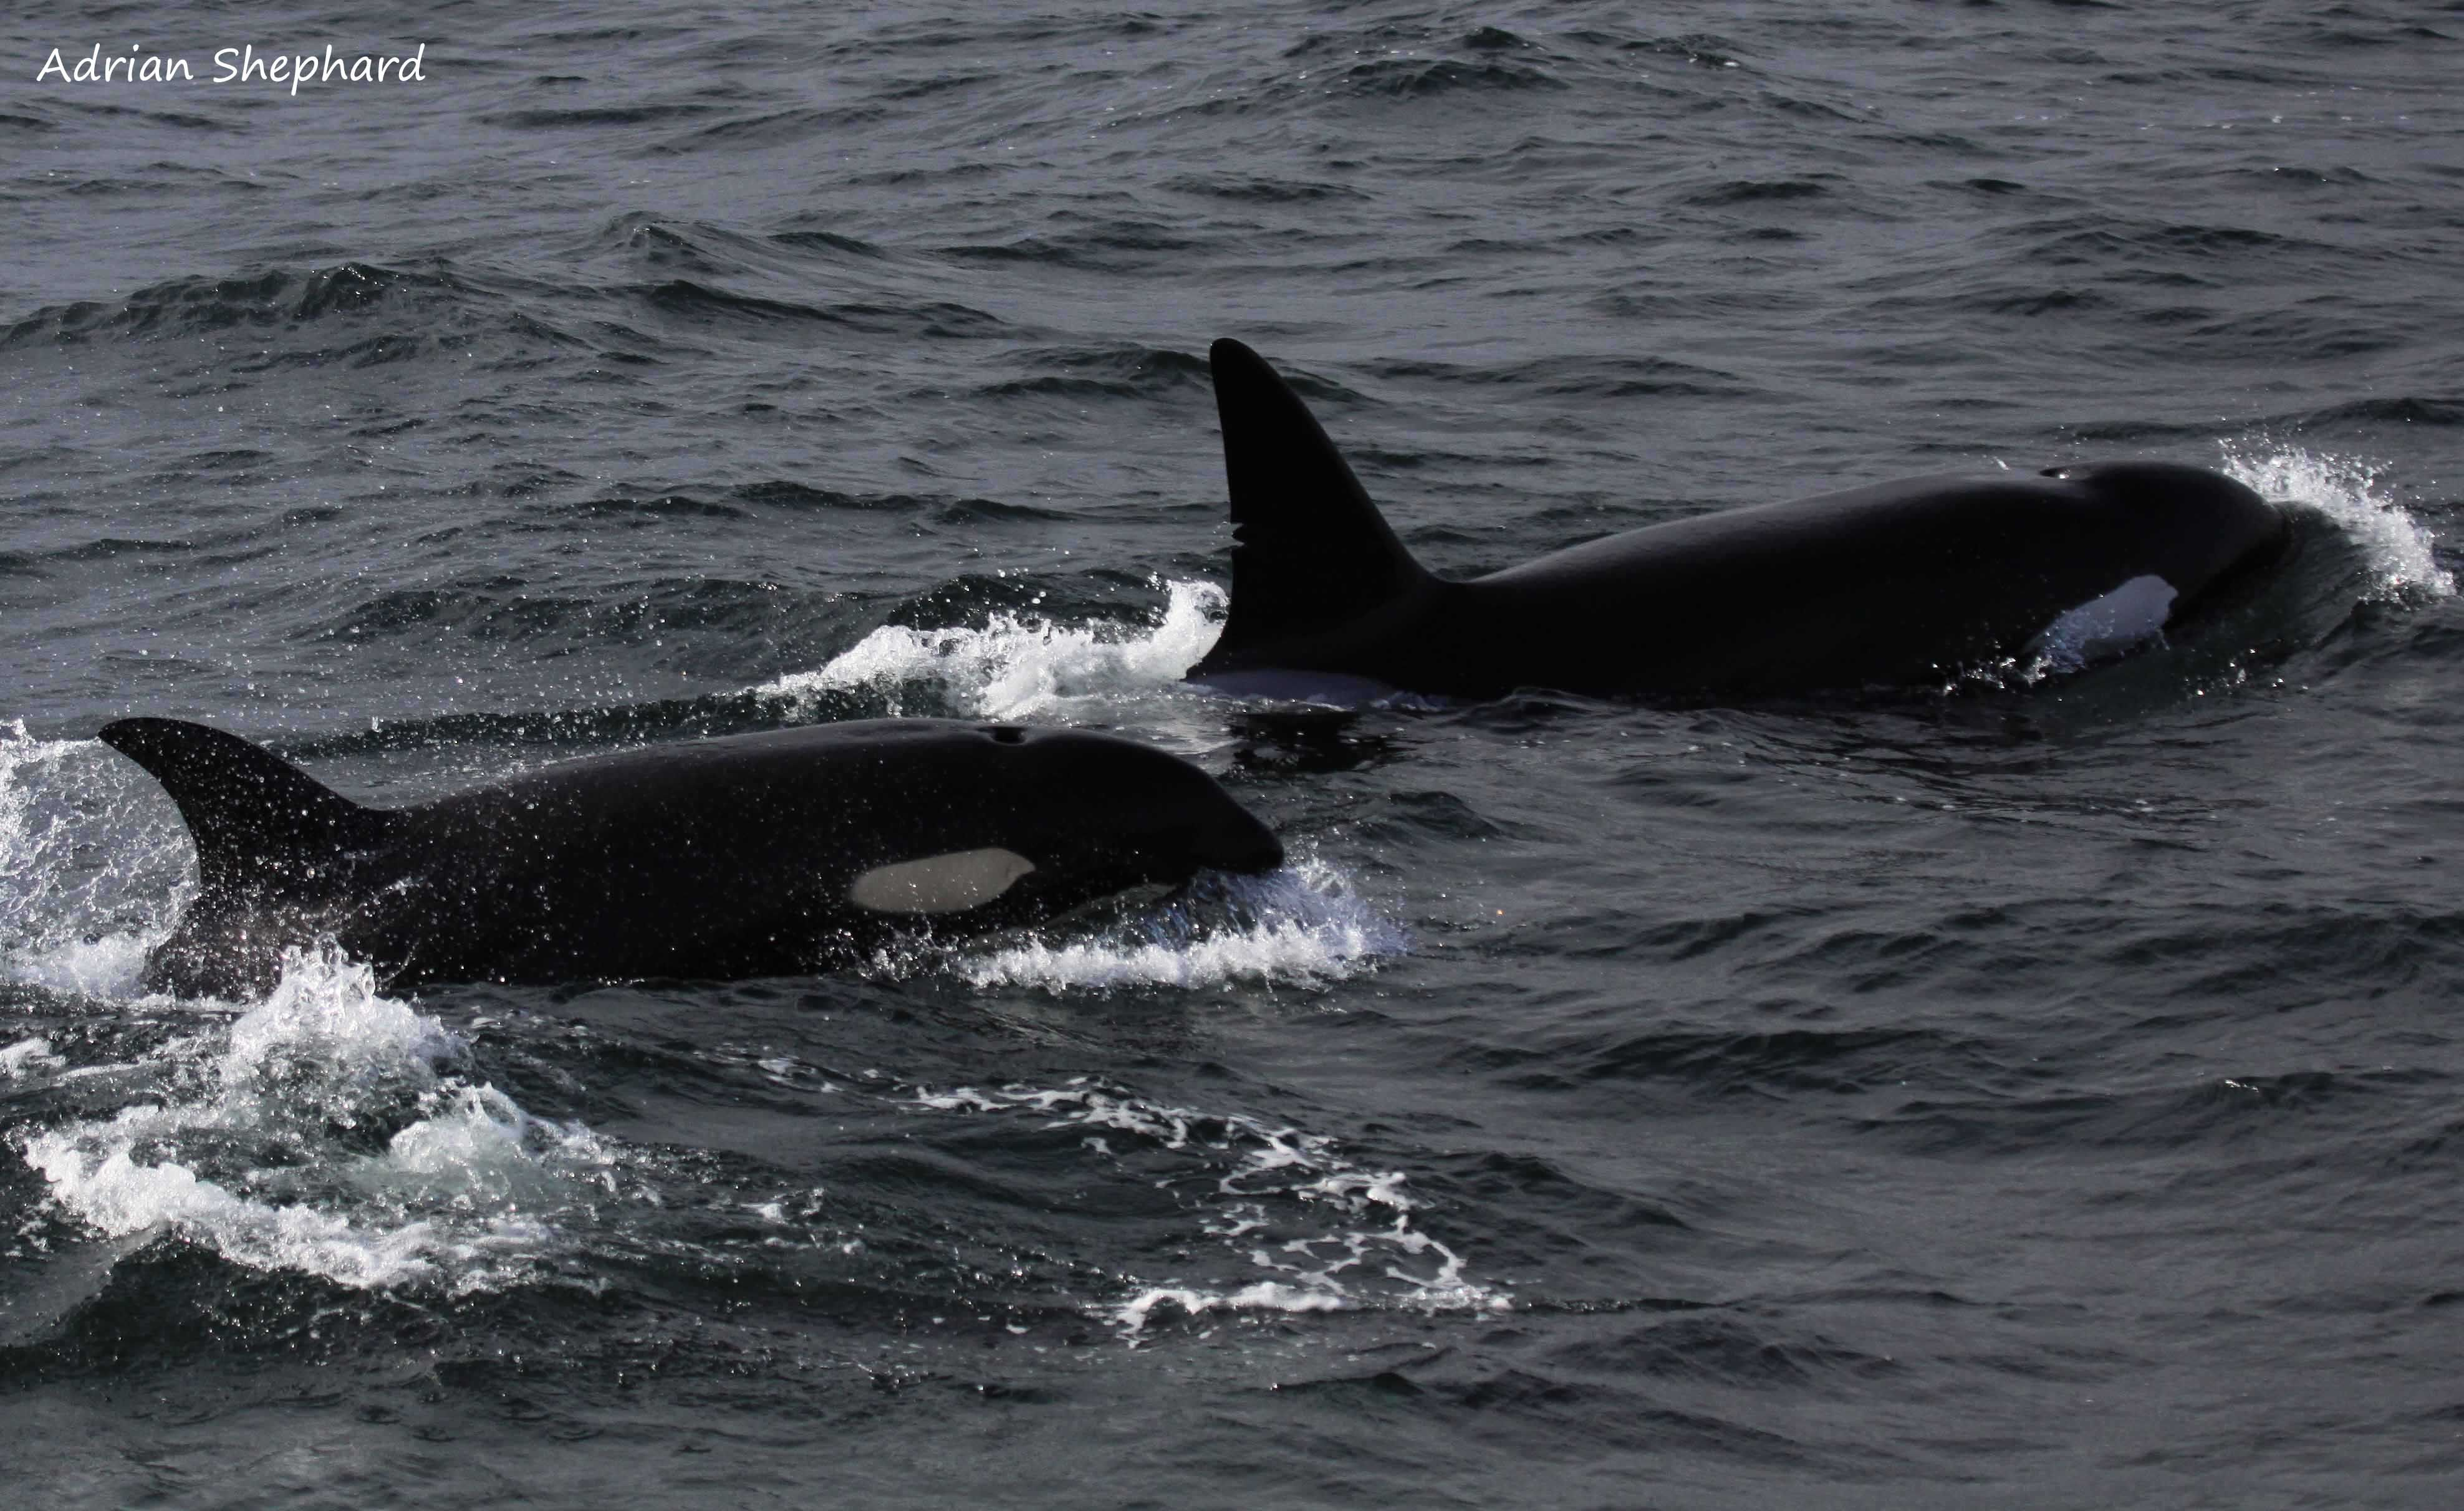 White markings and dorsal fin